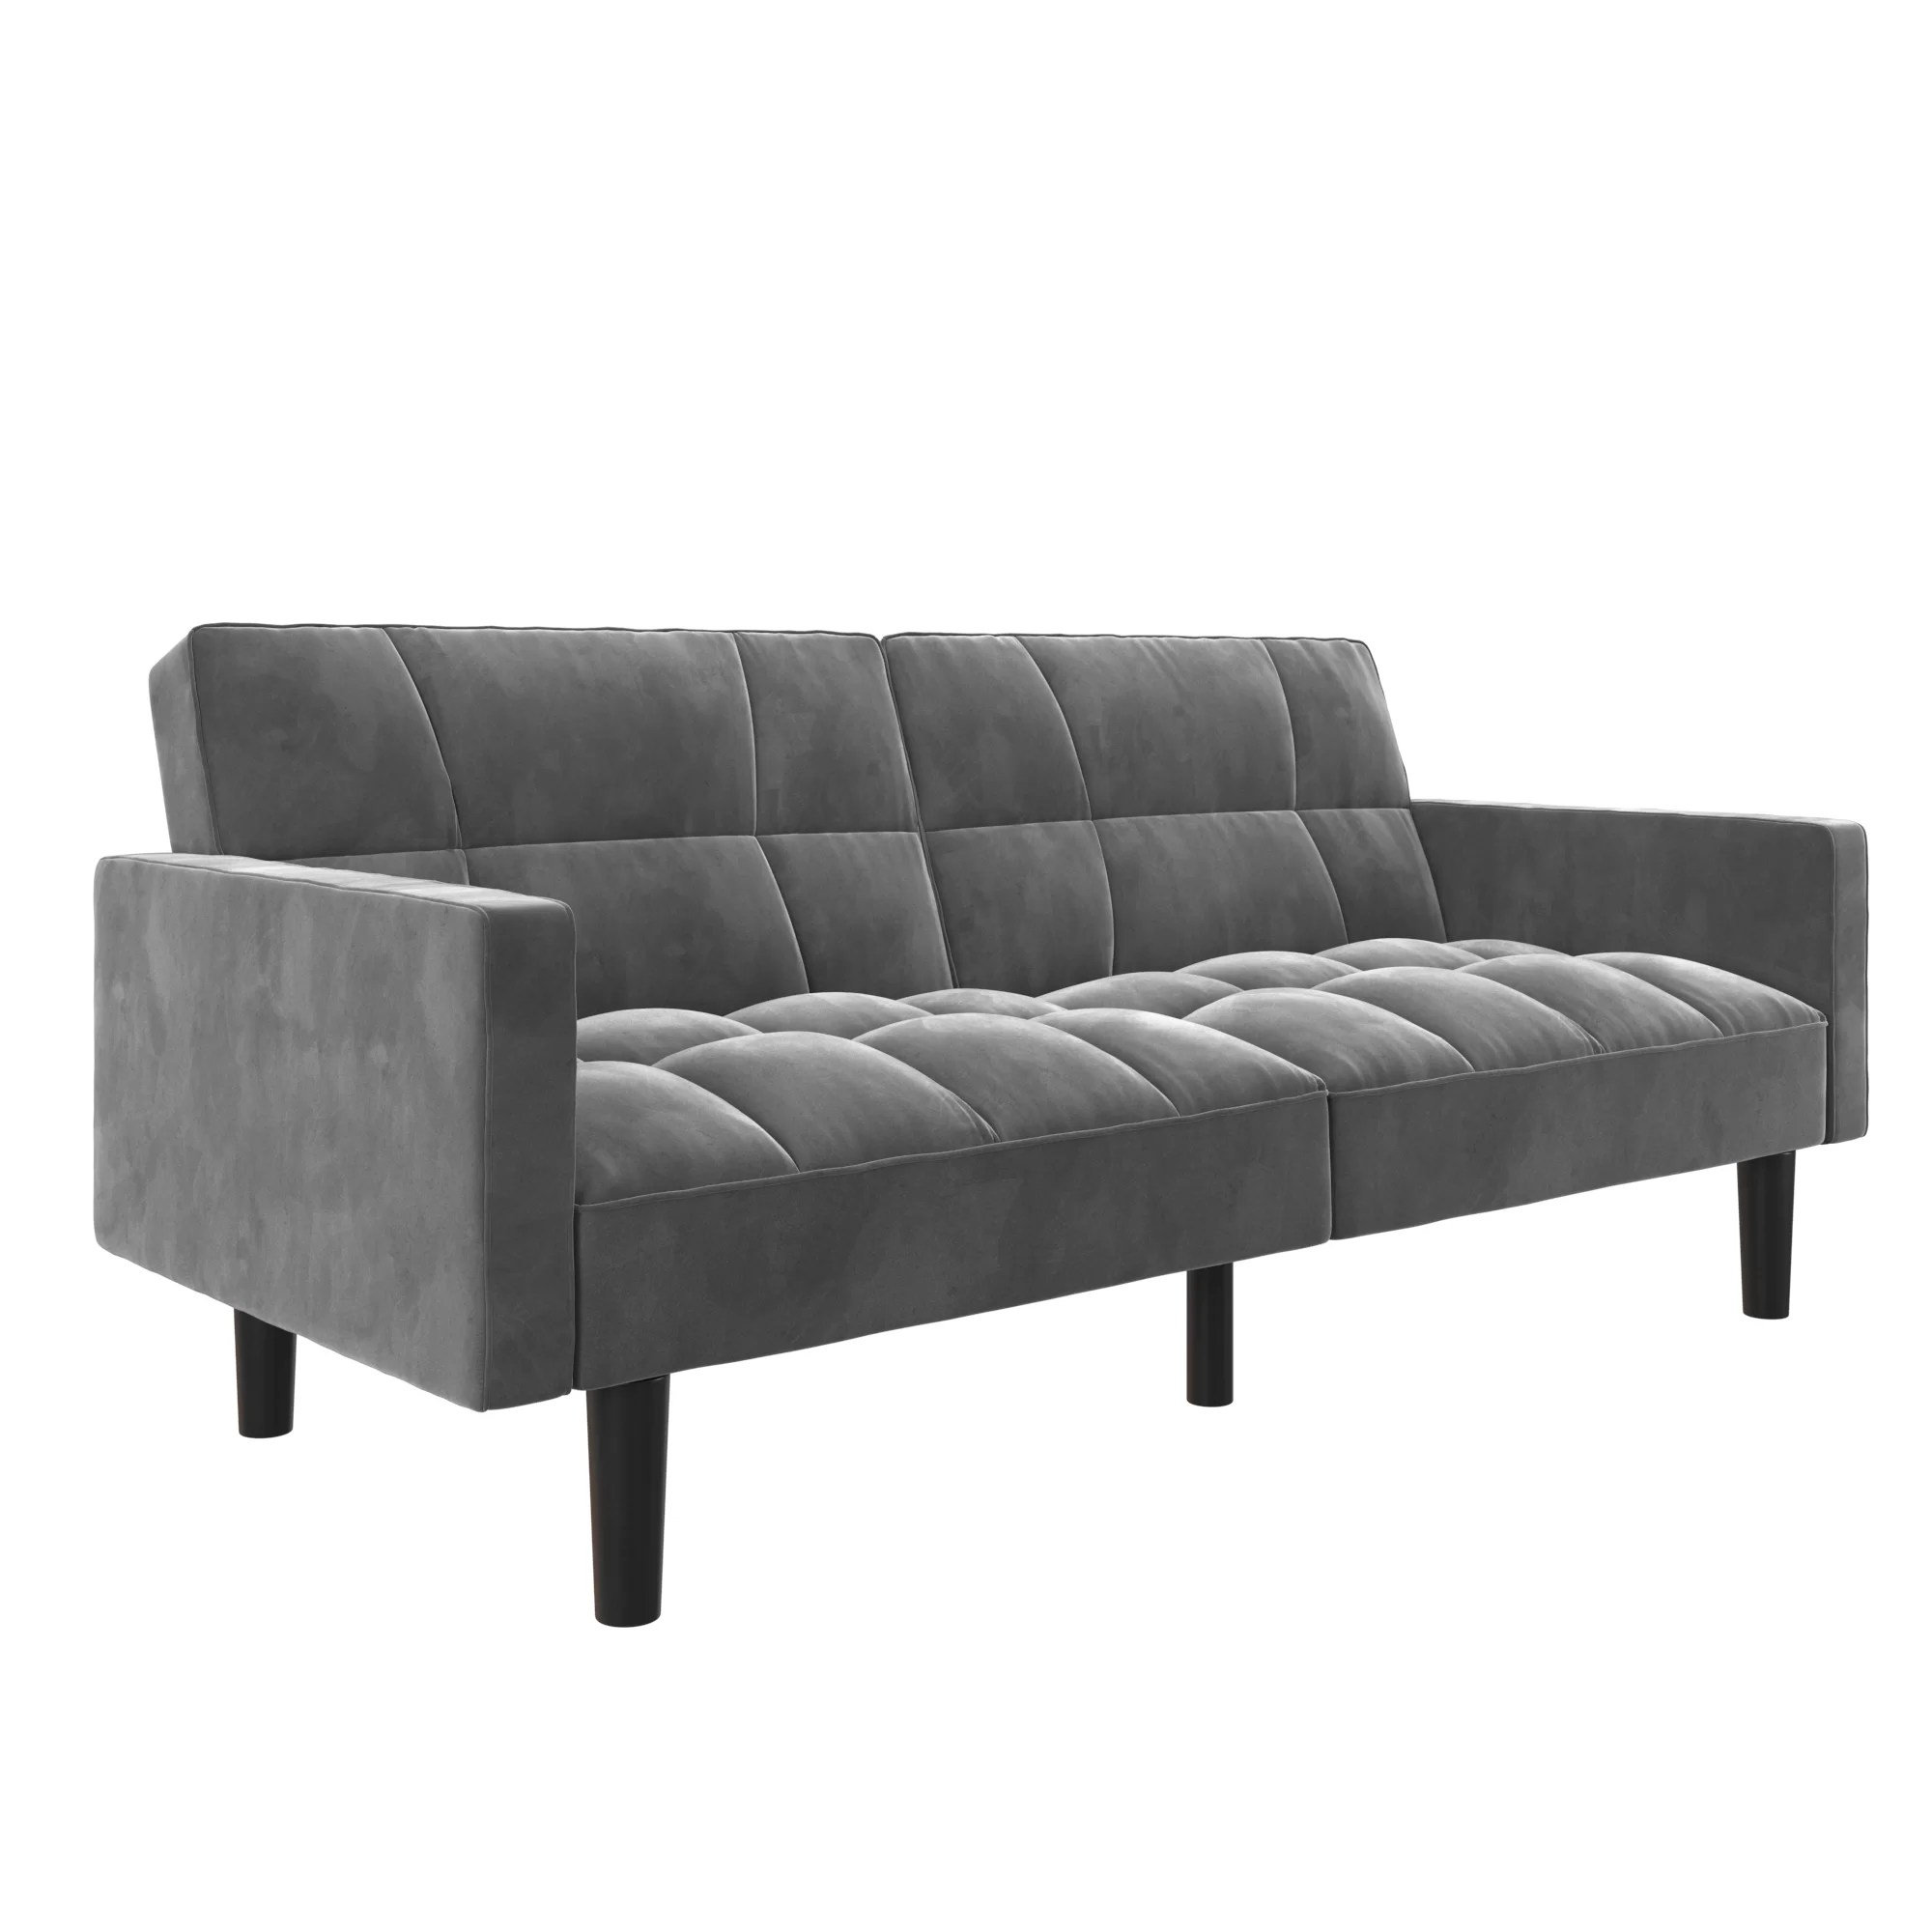 Sofa Entertainment Group Llc Entertainment Couch Wayfair